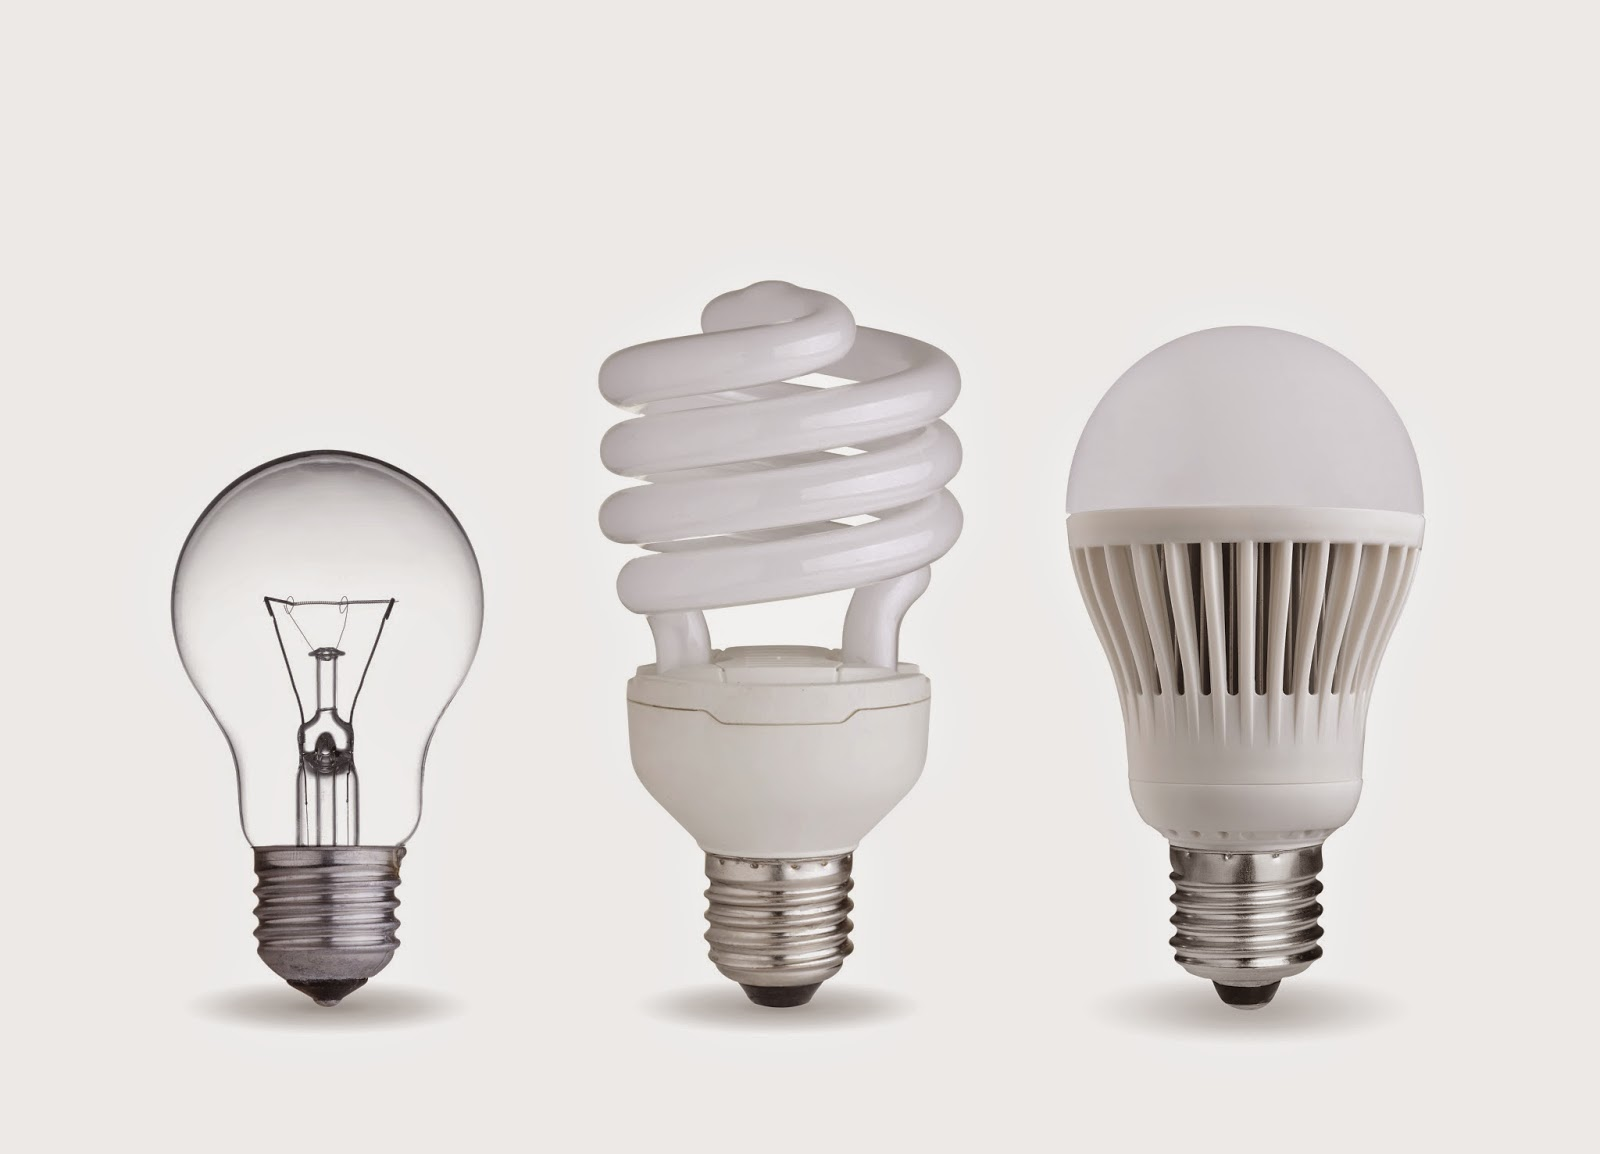 Recycling Works Are Light Bulbs Recyclable